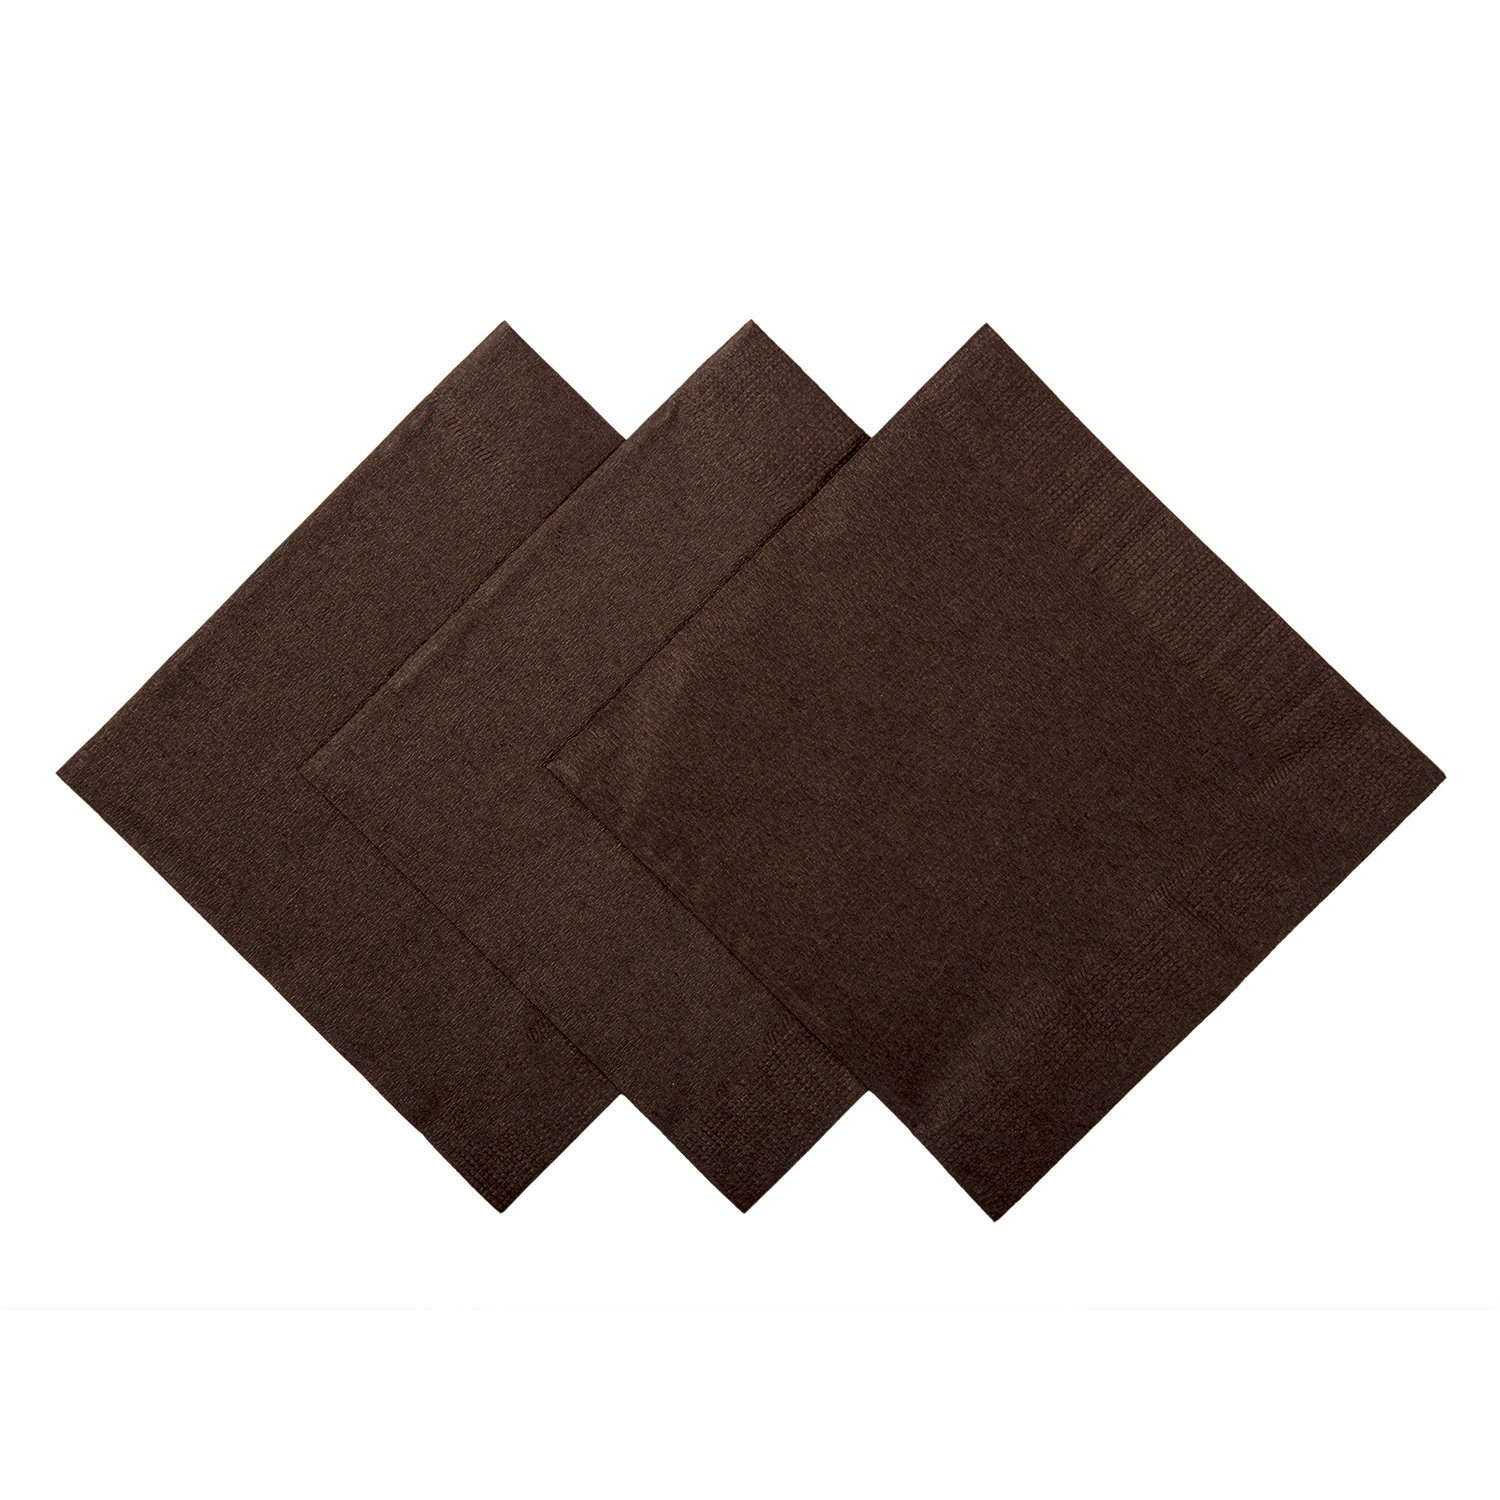 Royal Chocolate Brown Beverage Napkins, Case of 1,000 by ROYAL